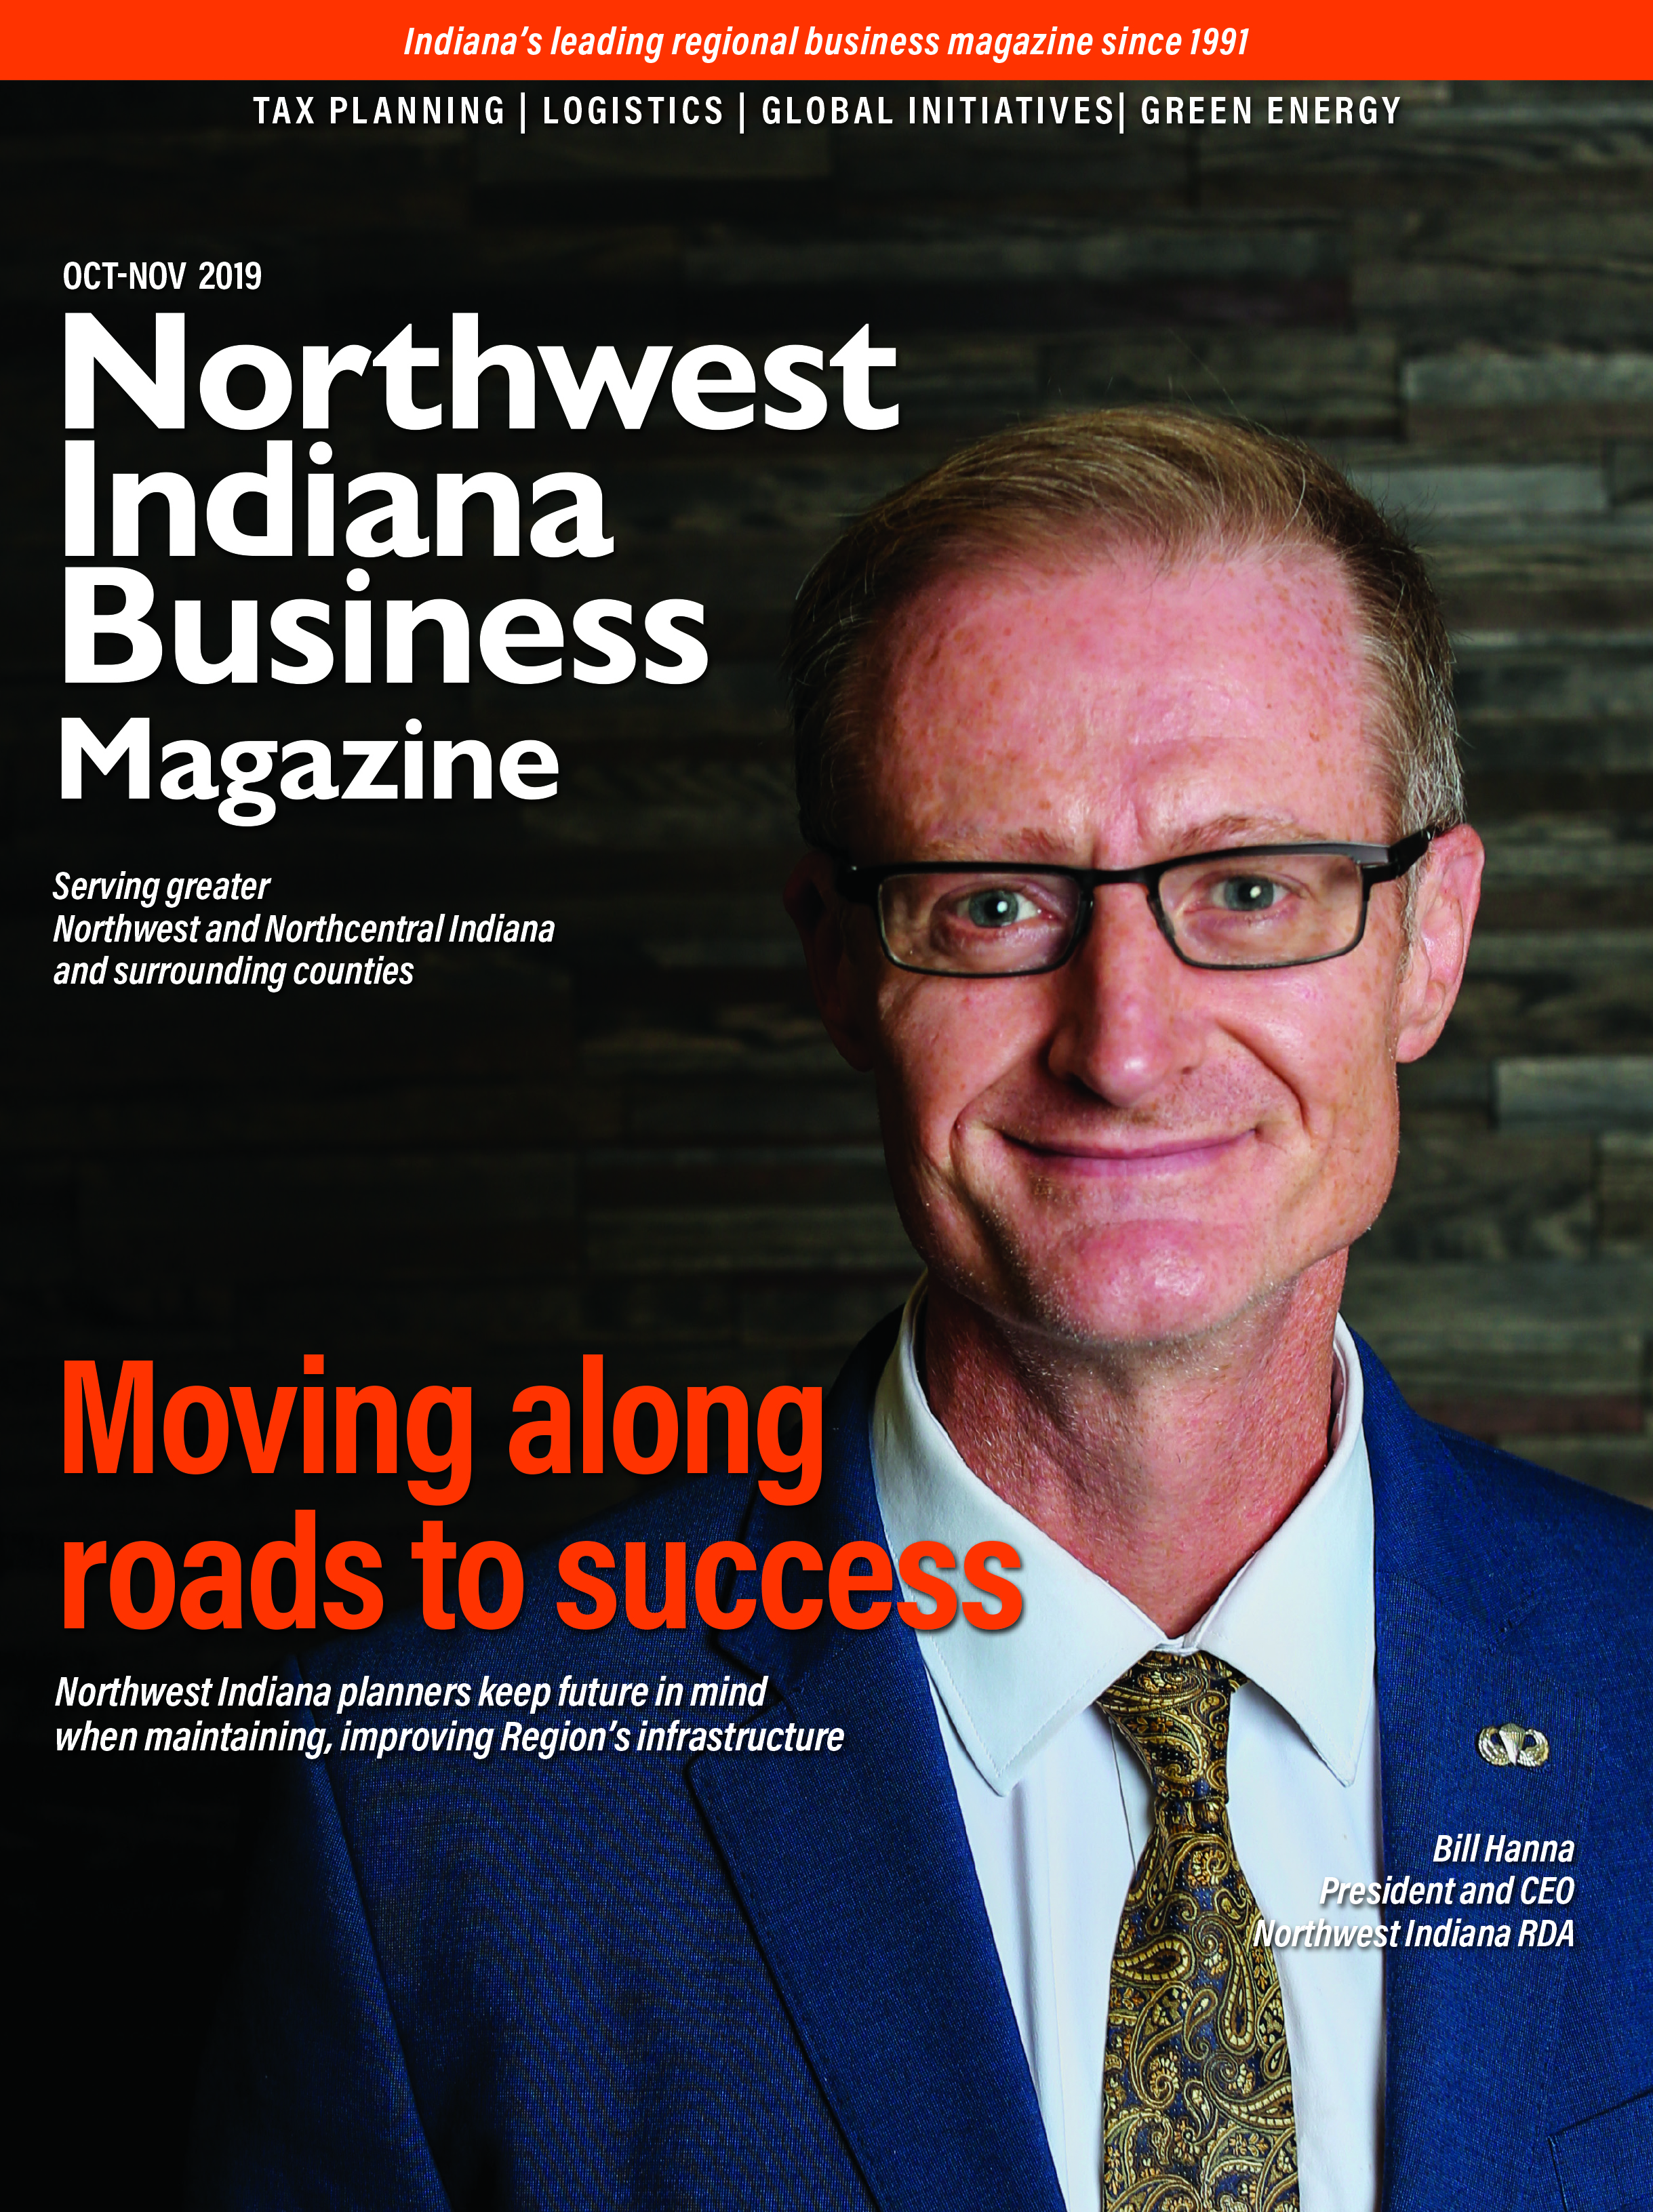 Northwest Indiana Business Magazine Oct-Nov 2019 issue